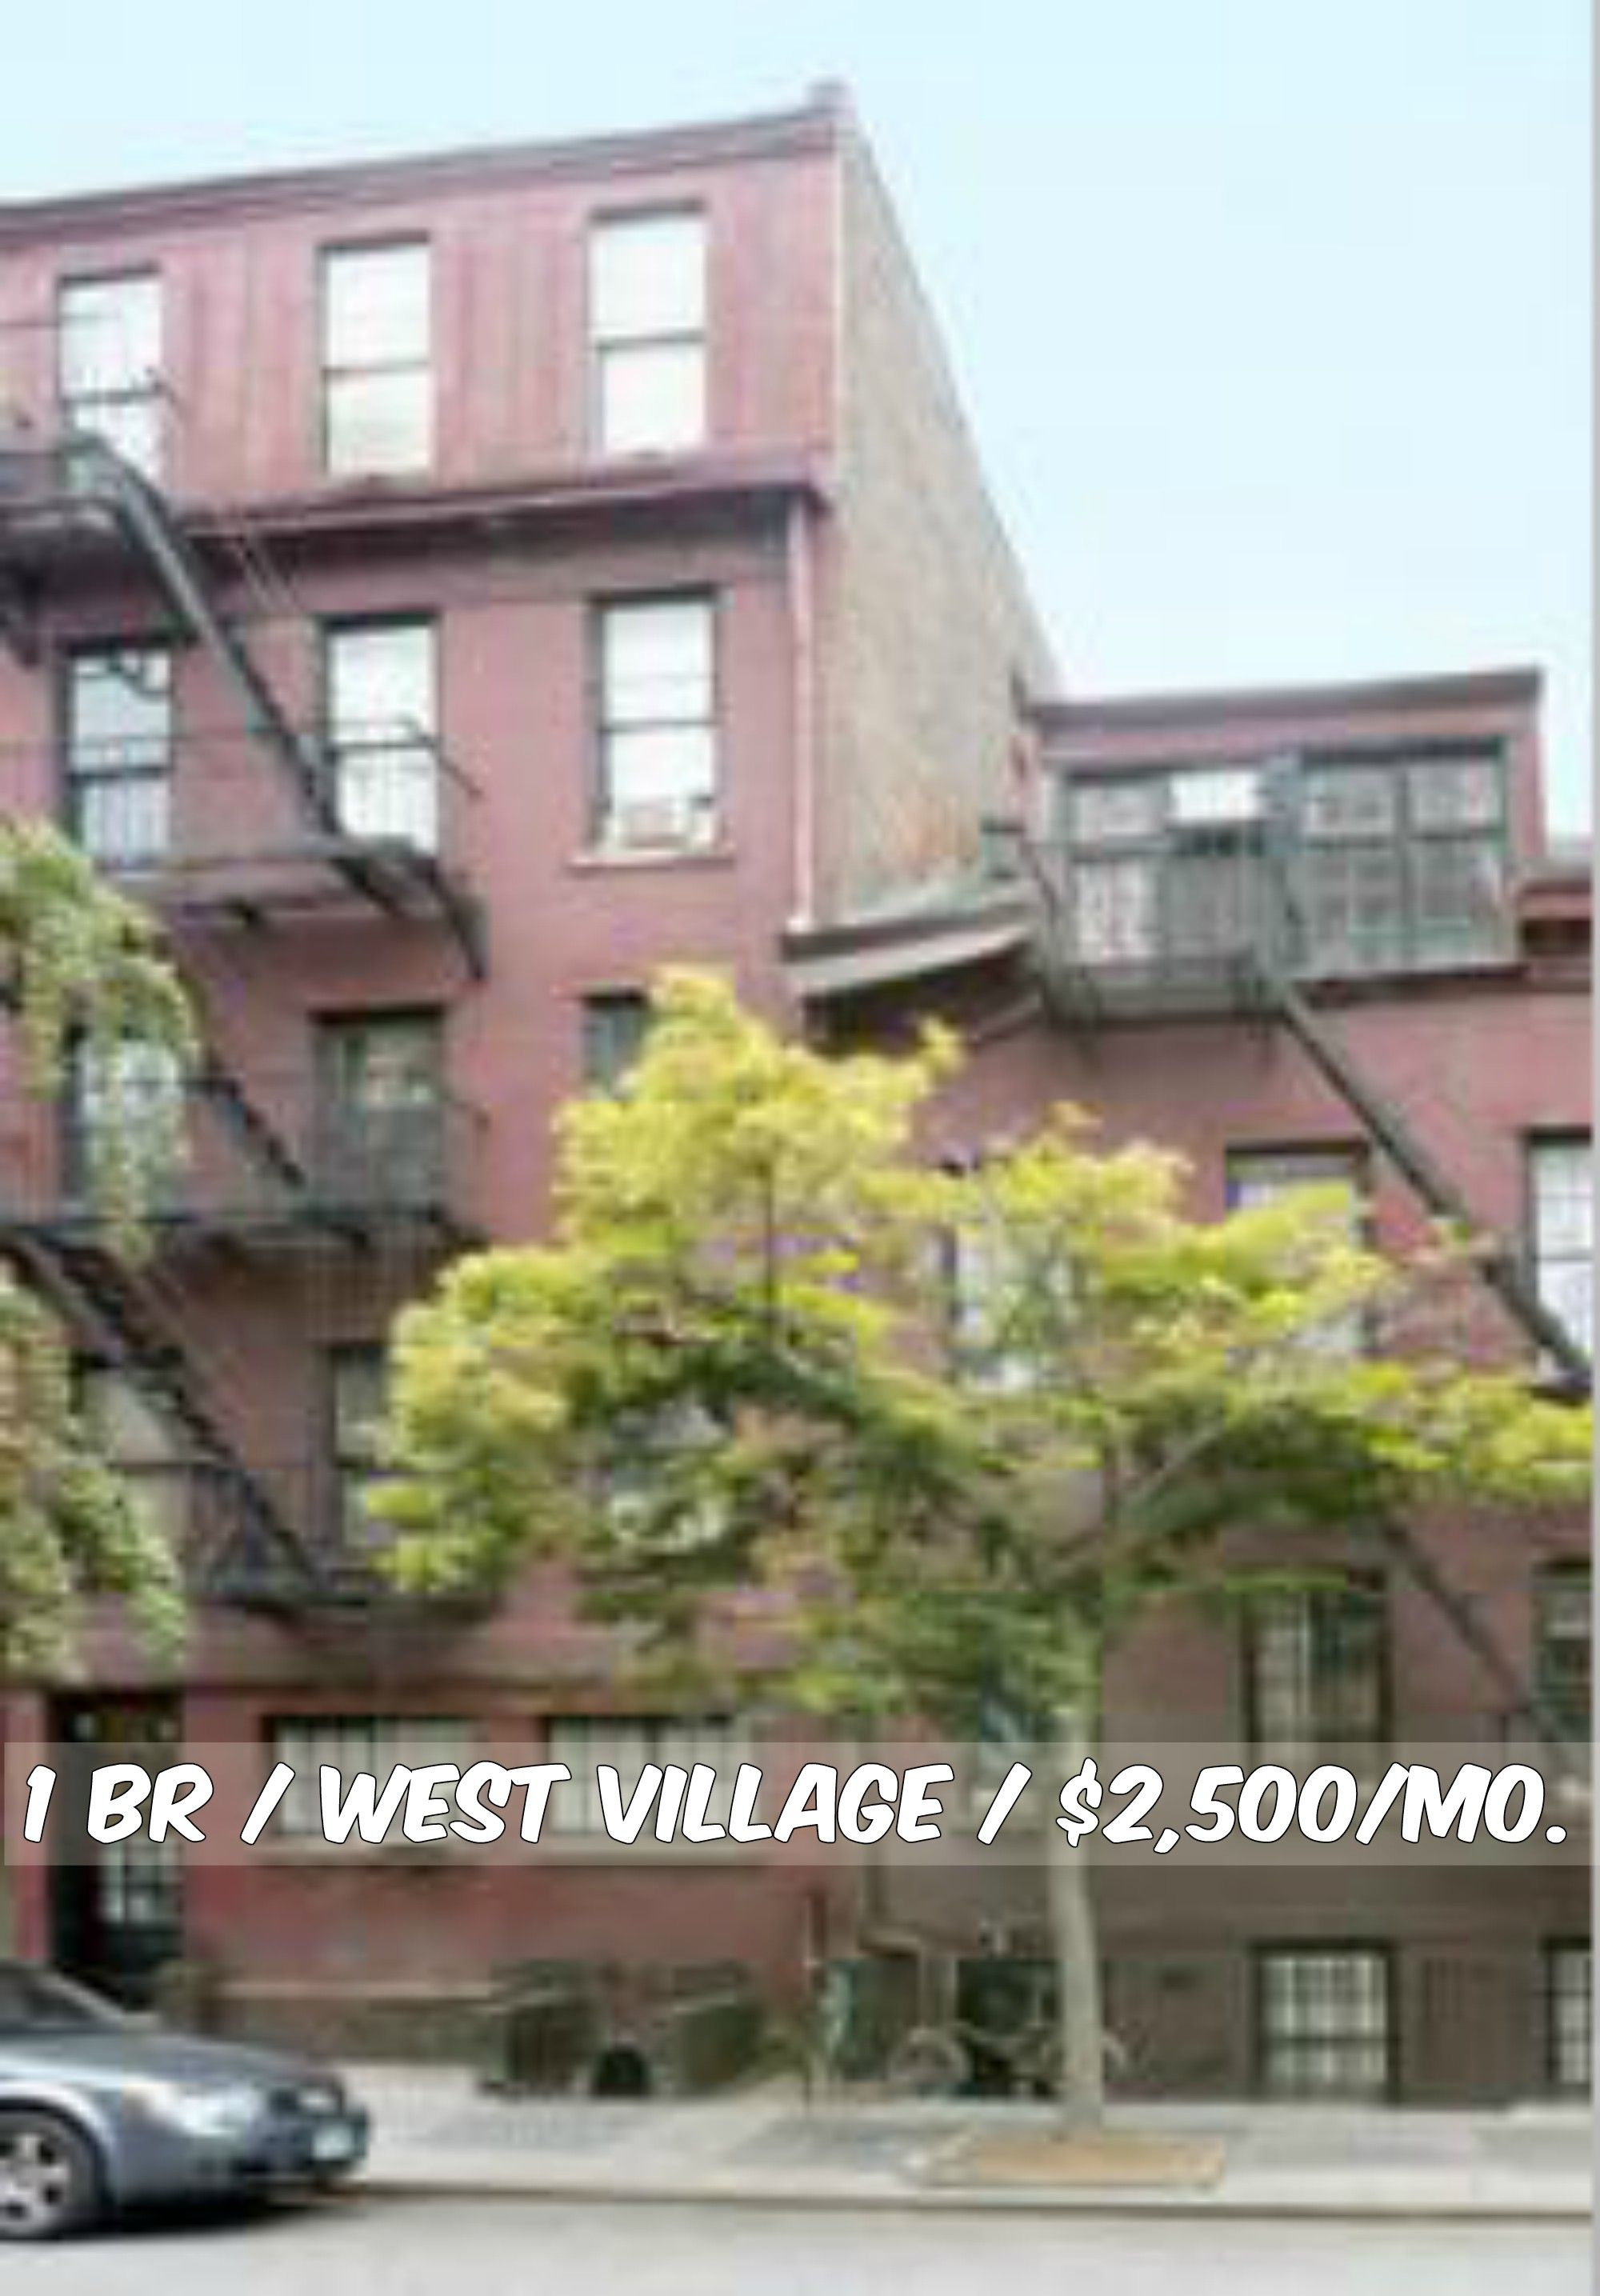 Studio Apt For Rent In West Village At 2 500 Mo Brownstone Contact Us For Details Web Id 136052 Nycapartments Apartment Hunting West Village Apt For Rent